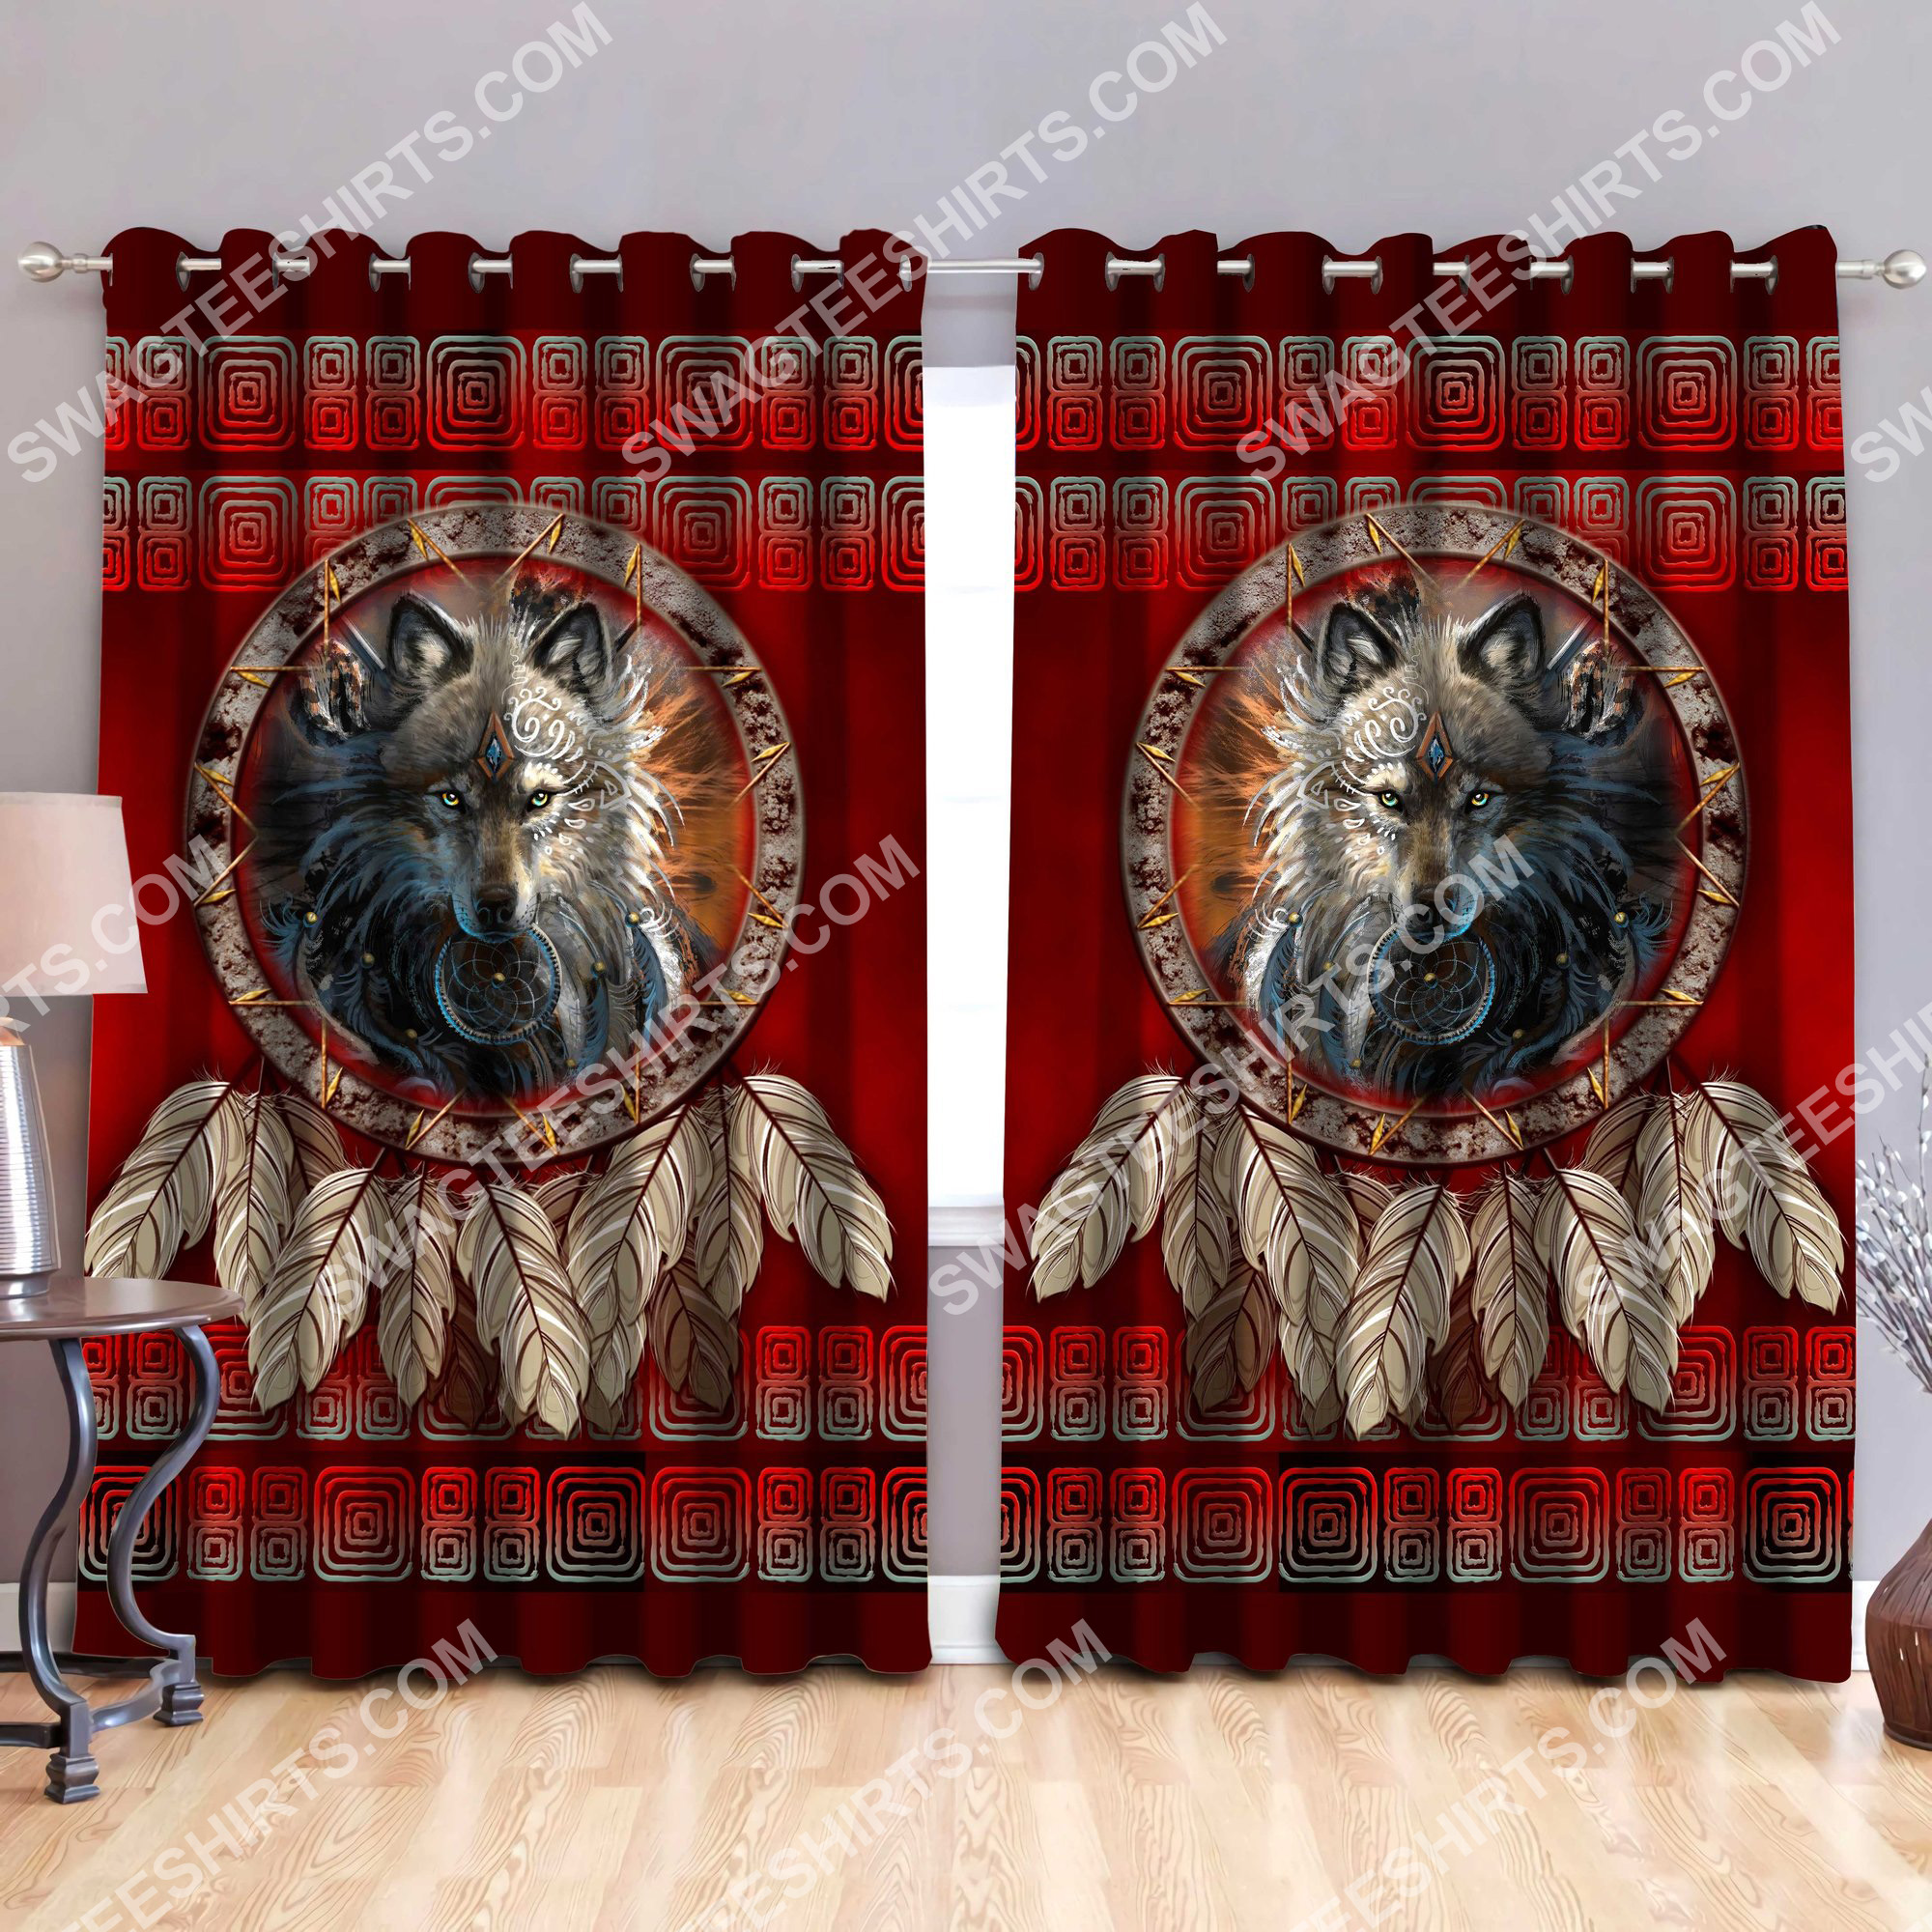 wolf american native symbol all over printed window curtains 2(1) - Copy